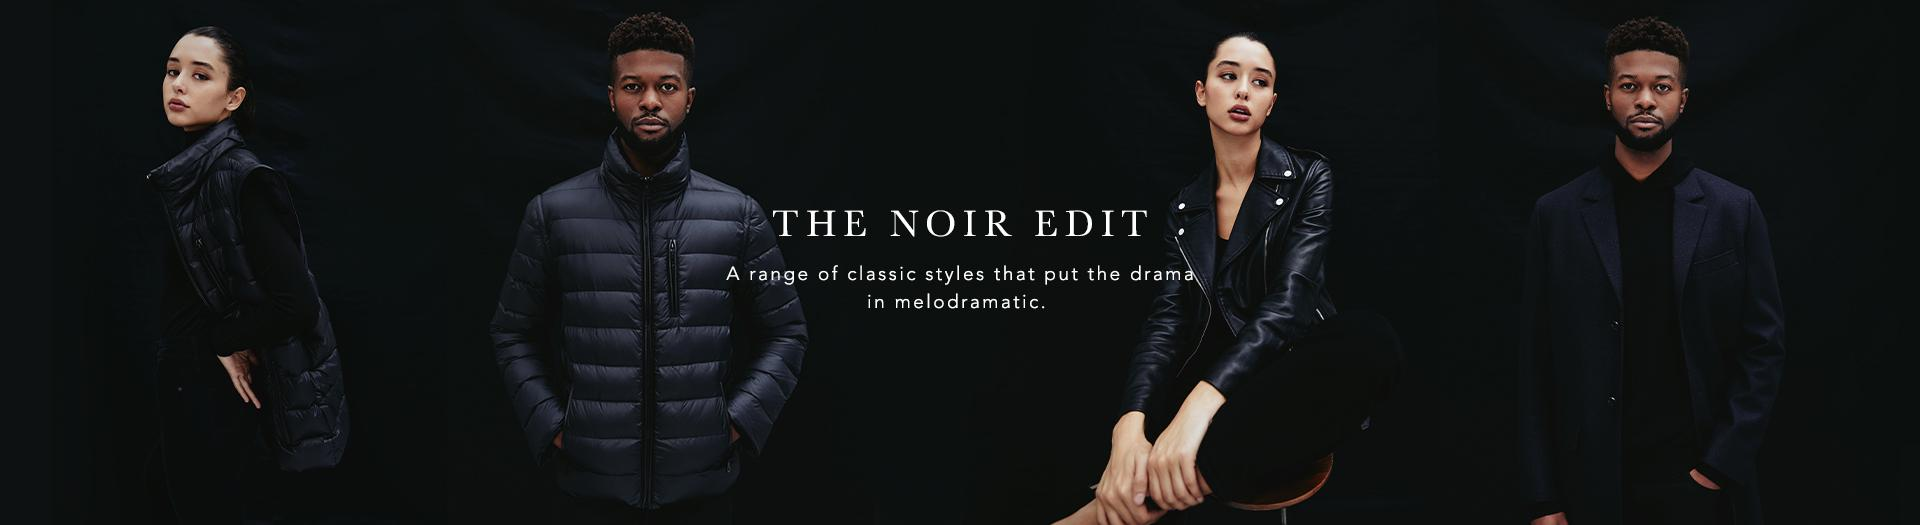 The Noir Edit - A range of classic styles that put the drama in melodramatic